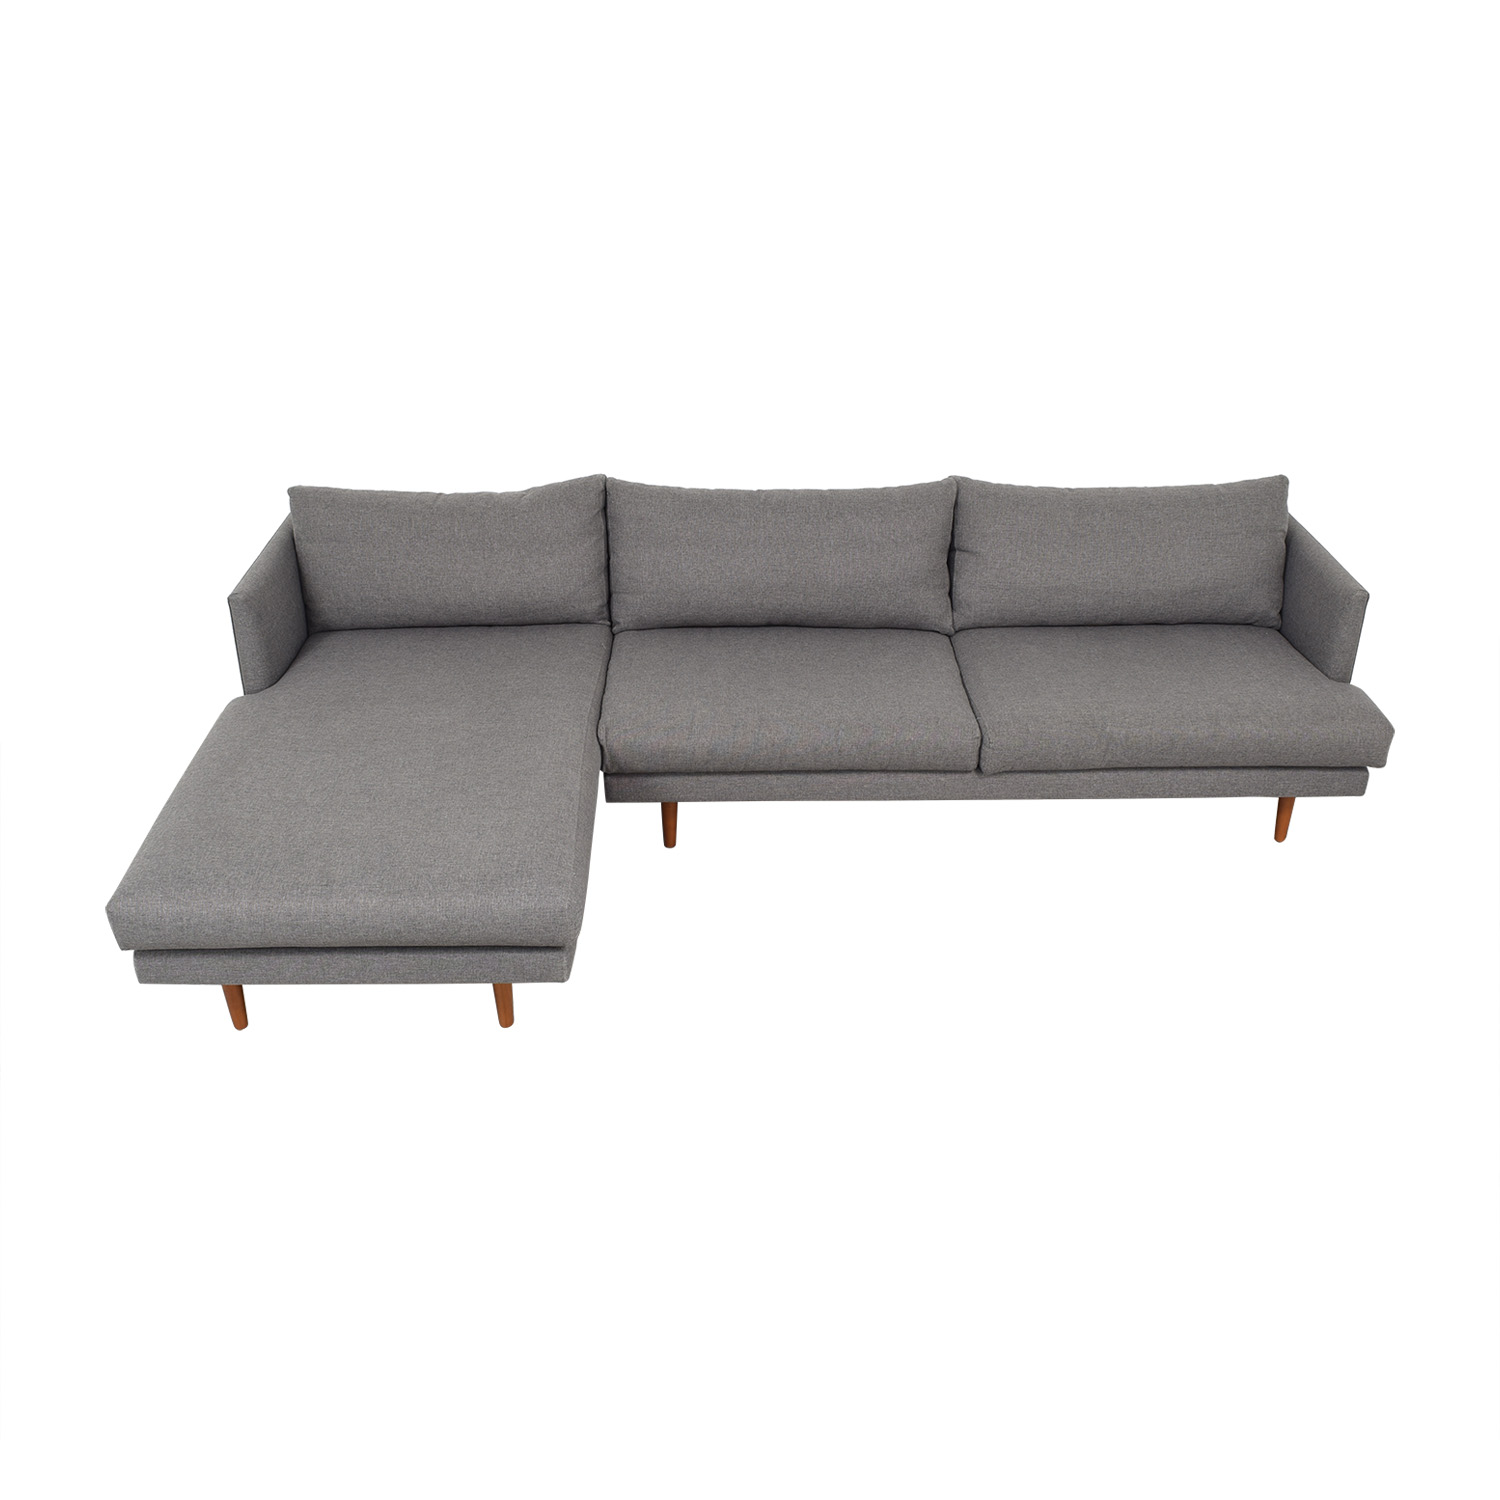 Article Article Burrard Left Sectional Sofa price